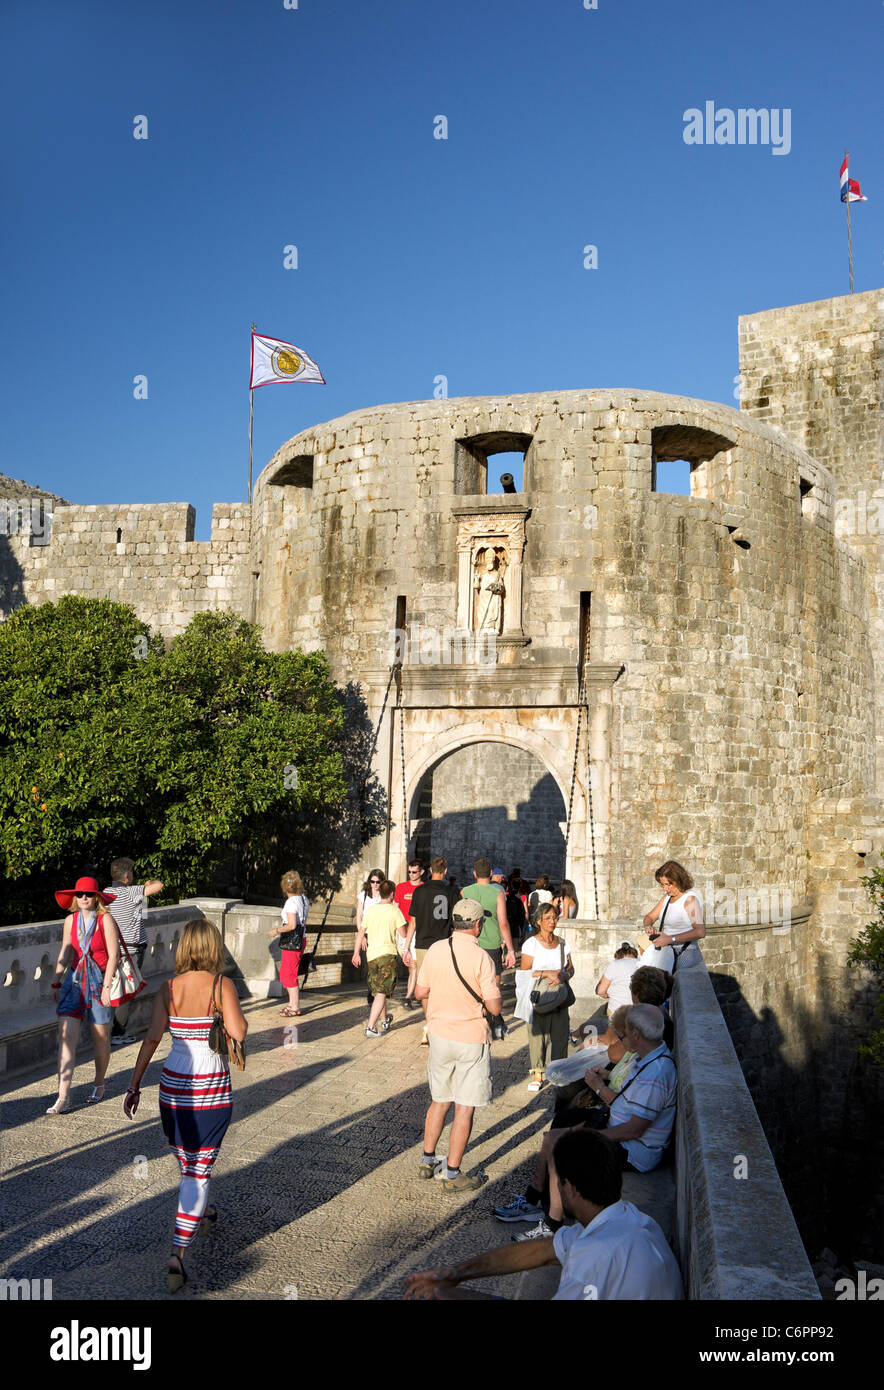 Pile Gate,St.Blaise,Dubrovnik ,city wall,old Town.Croatia.Main entrance to City. - Stock Image